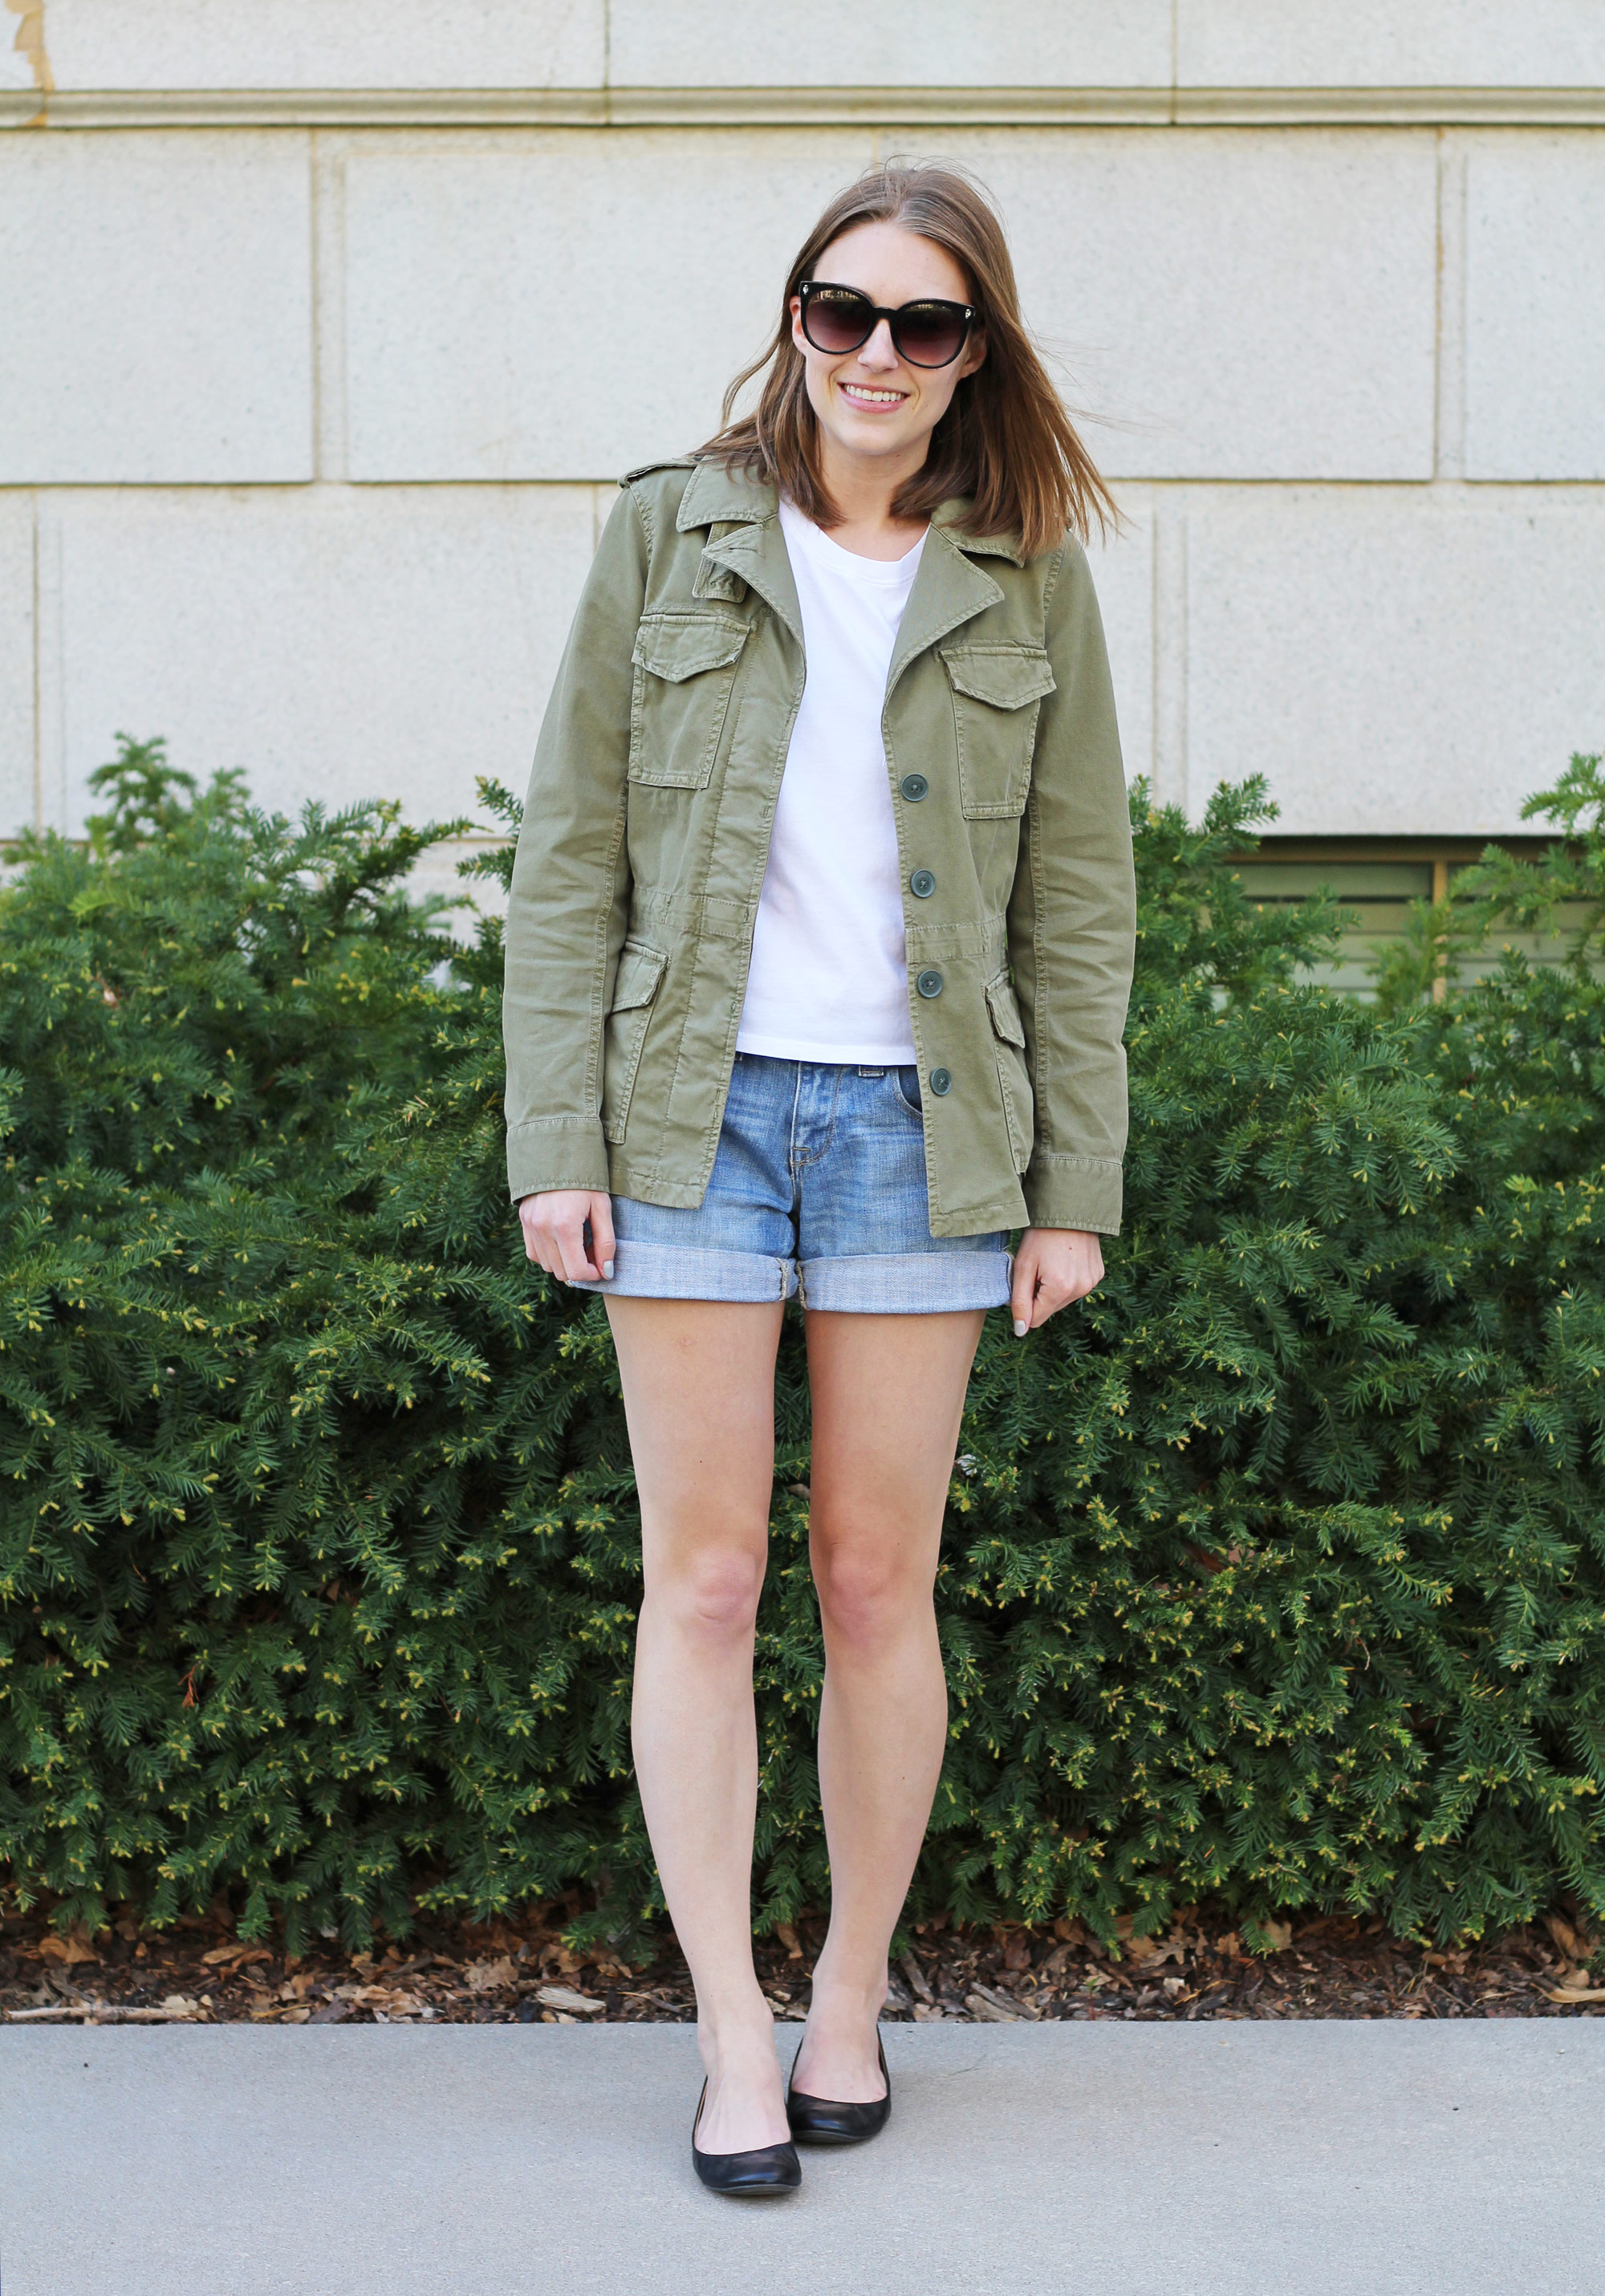 Madewell 'Outbound' jacket, Everlane box tee, denim shorts, J.Crew 'Cece' flats — Cotton Cashmere Cat Hair